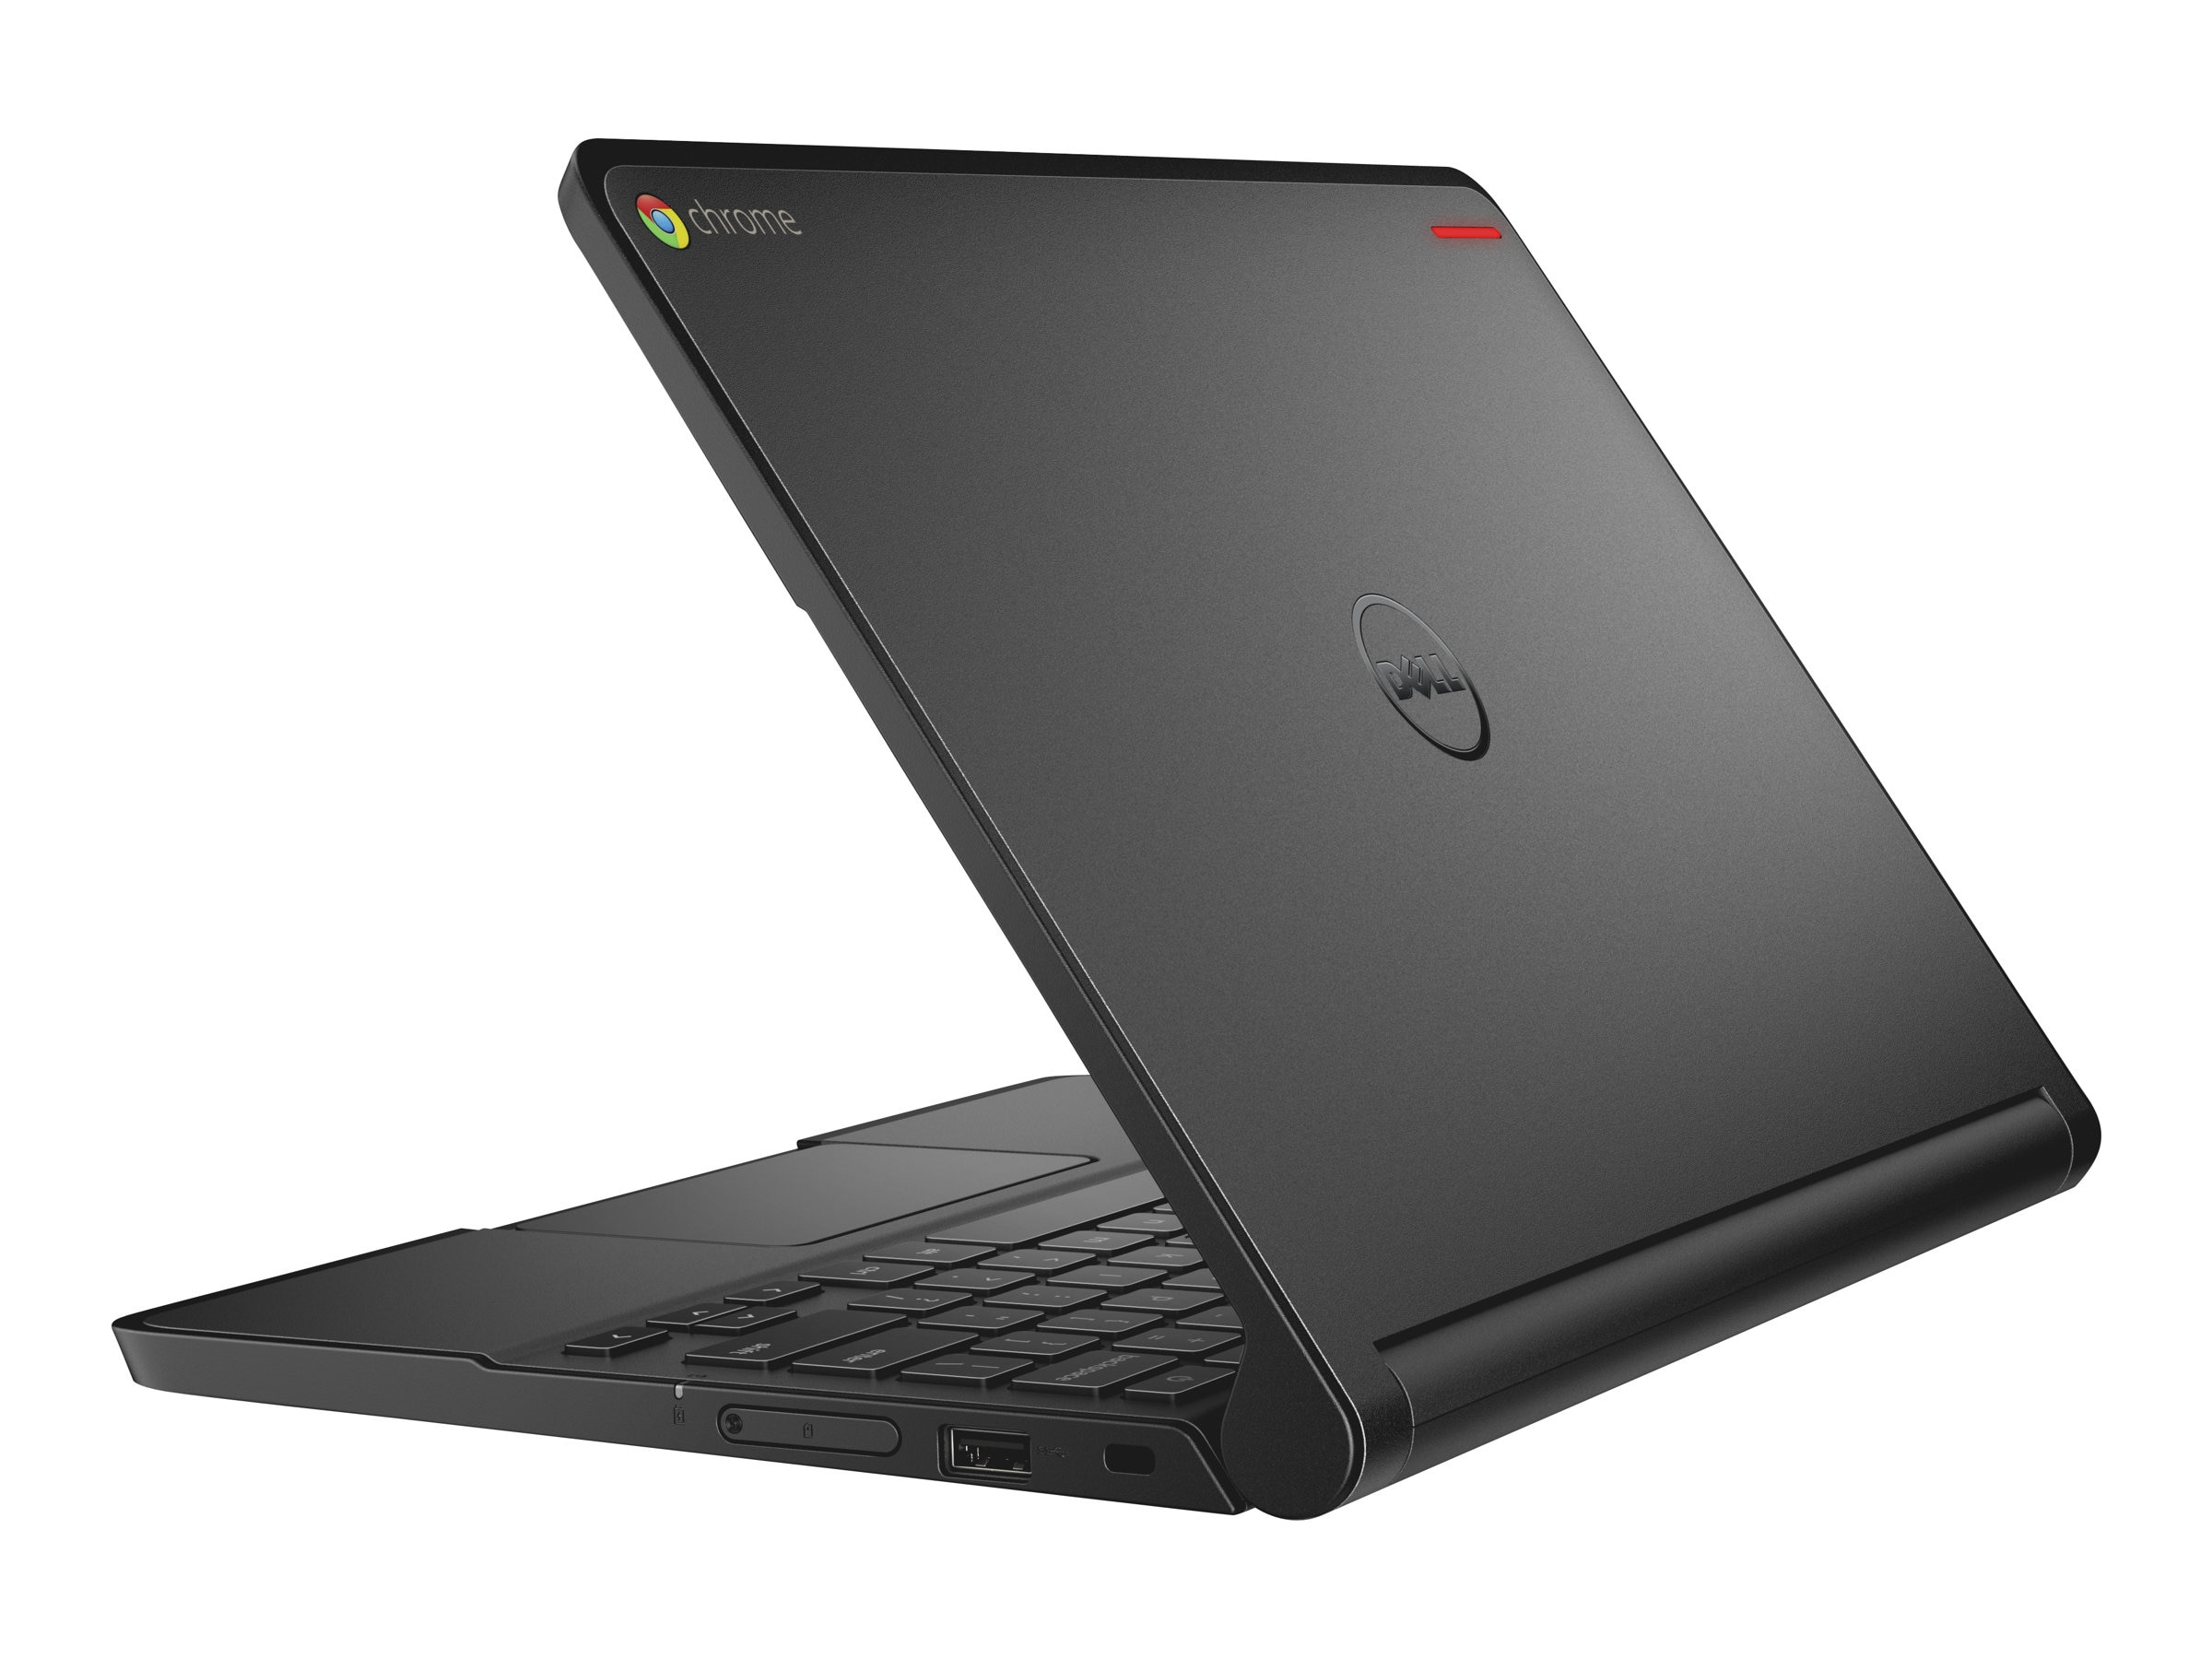 Dell XDGJH Image 6